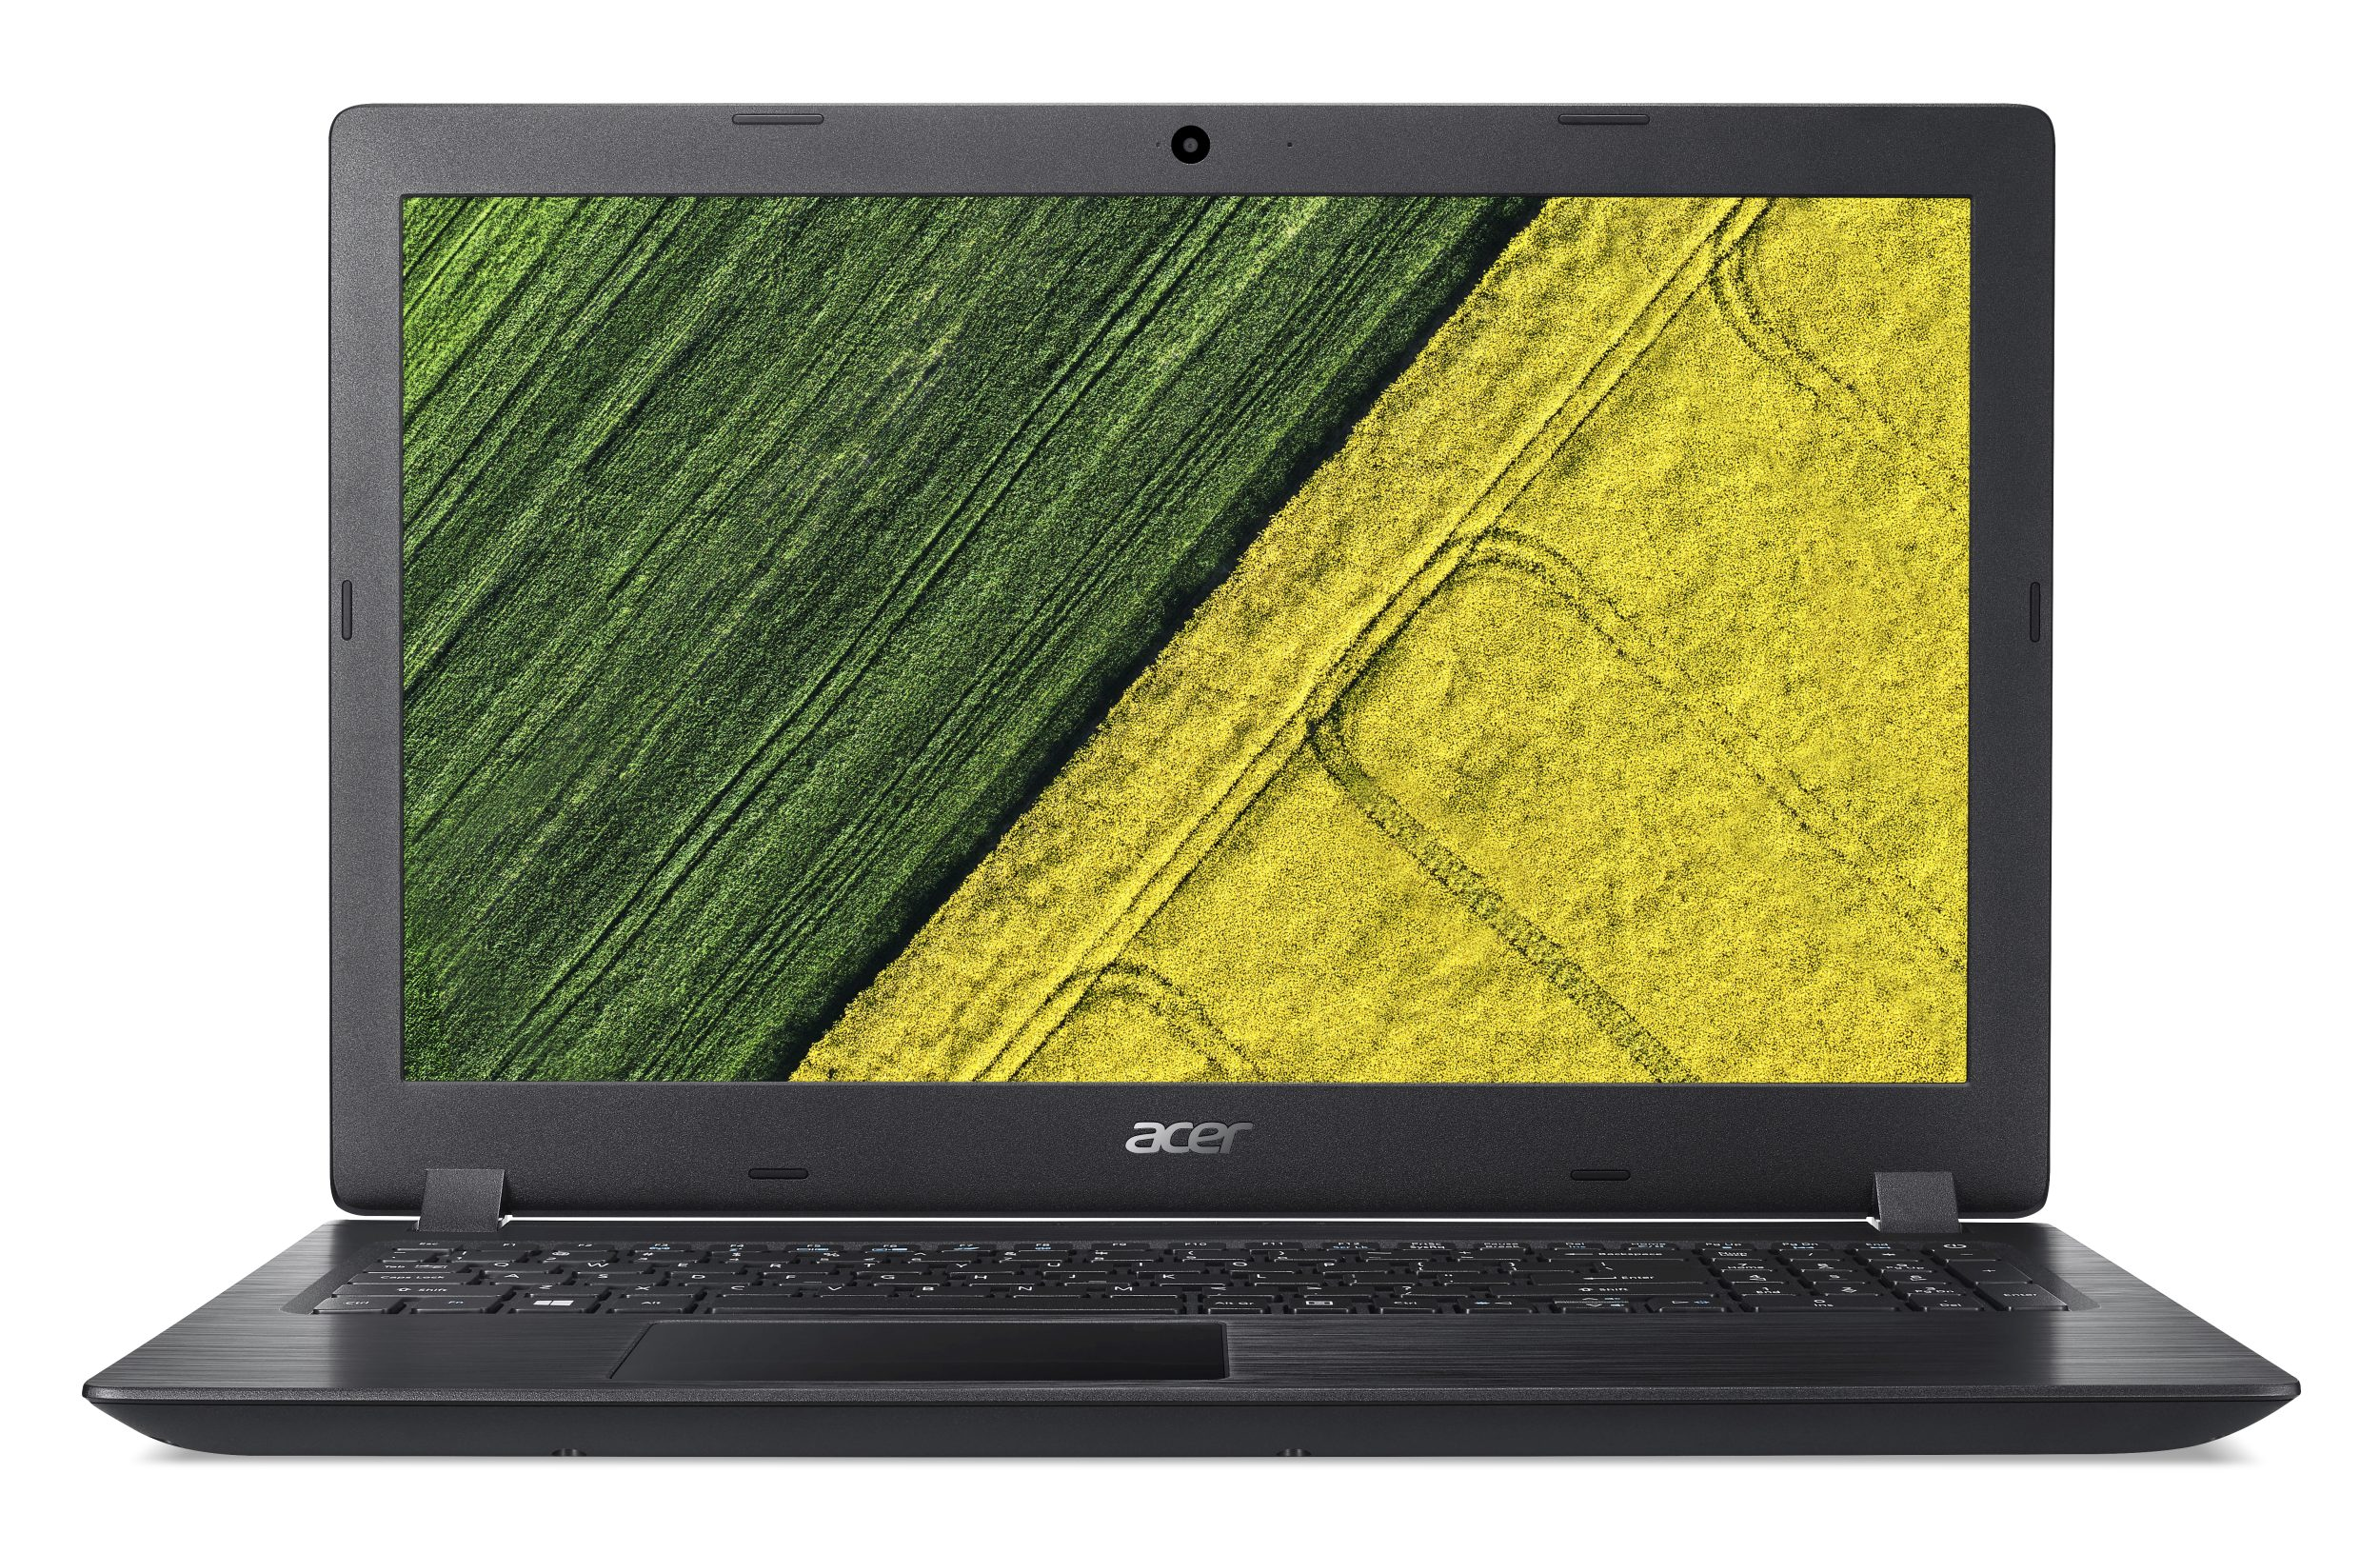 "Acer Aspire 3 (A315-51-330U) i3-6006U/4GB+N/A/1TB+N/HD Graphics/15,6"" FHD LED matný/BT/W10 Home/Black"